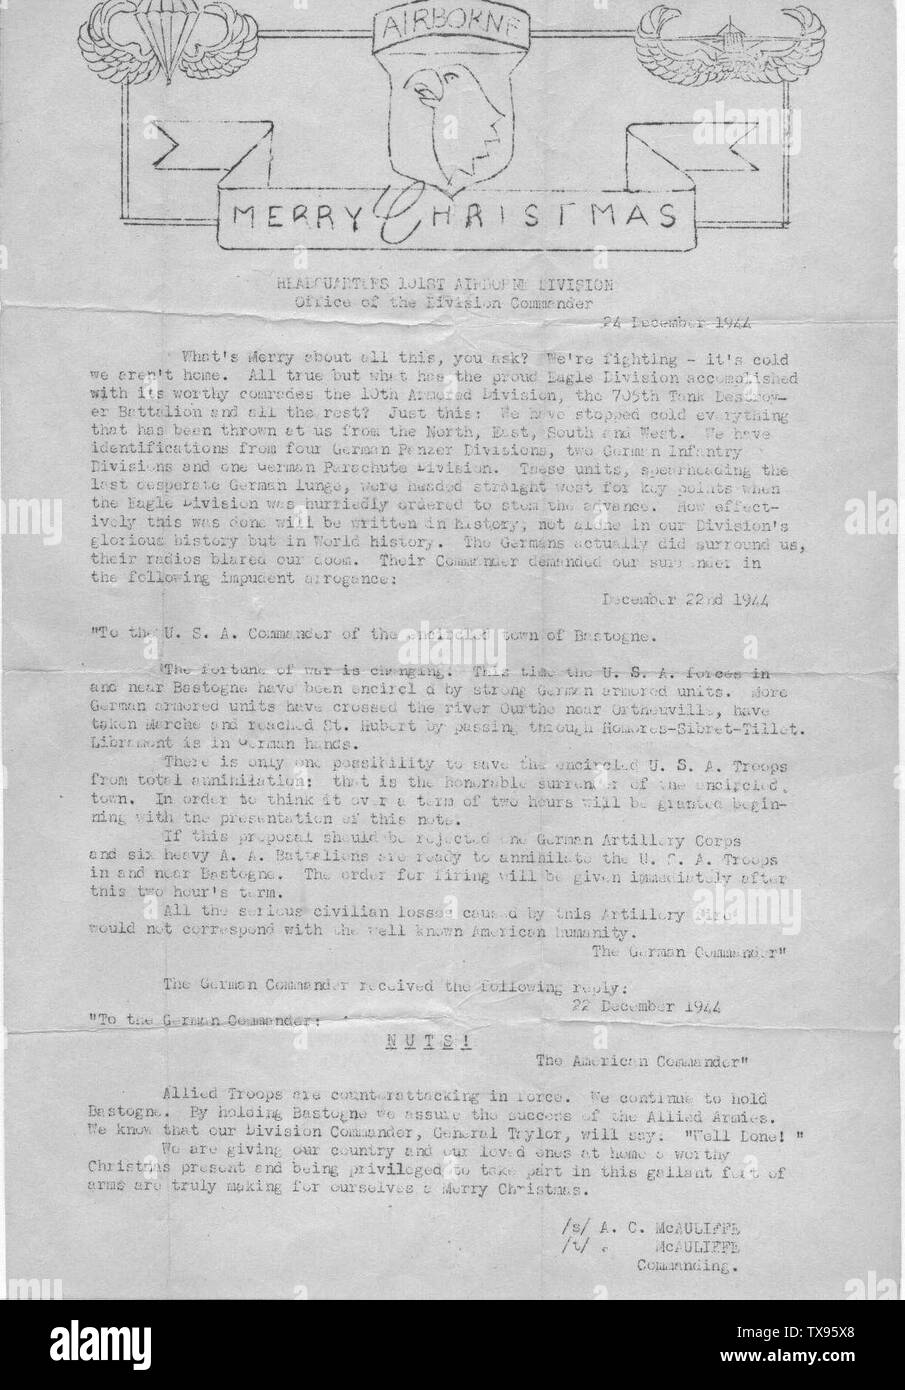 'English: Scanned in image of copy of the letter sent to soldiers of the 101st Airborne Division during the Battle of Bastogne.  The original letter imaged here is from the memorabilia of Private William (Bill) Wheeler, 506th PIR, 101st Airborne Division who participated in the action.  He trained at Toccoa and was originally with Headquarters Company.  Private Wheeler volunteered for pathfinder school, participated in the D-Day drop as a pathfinder during which his transport airplane made a controlled ditching in the English Channel after being hit by anti-aircraft fire, and ended up in Easy - Stock Image